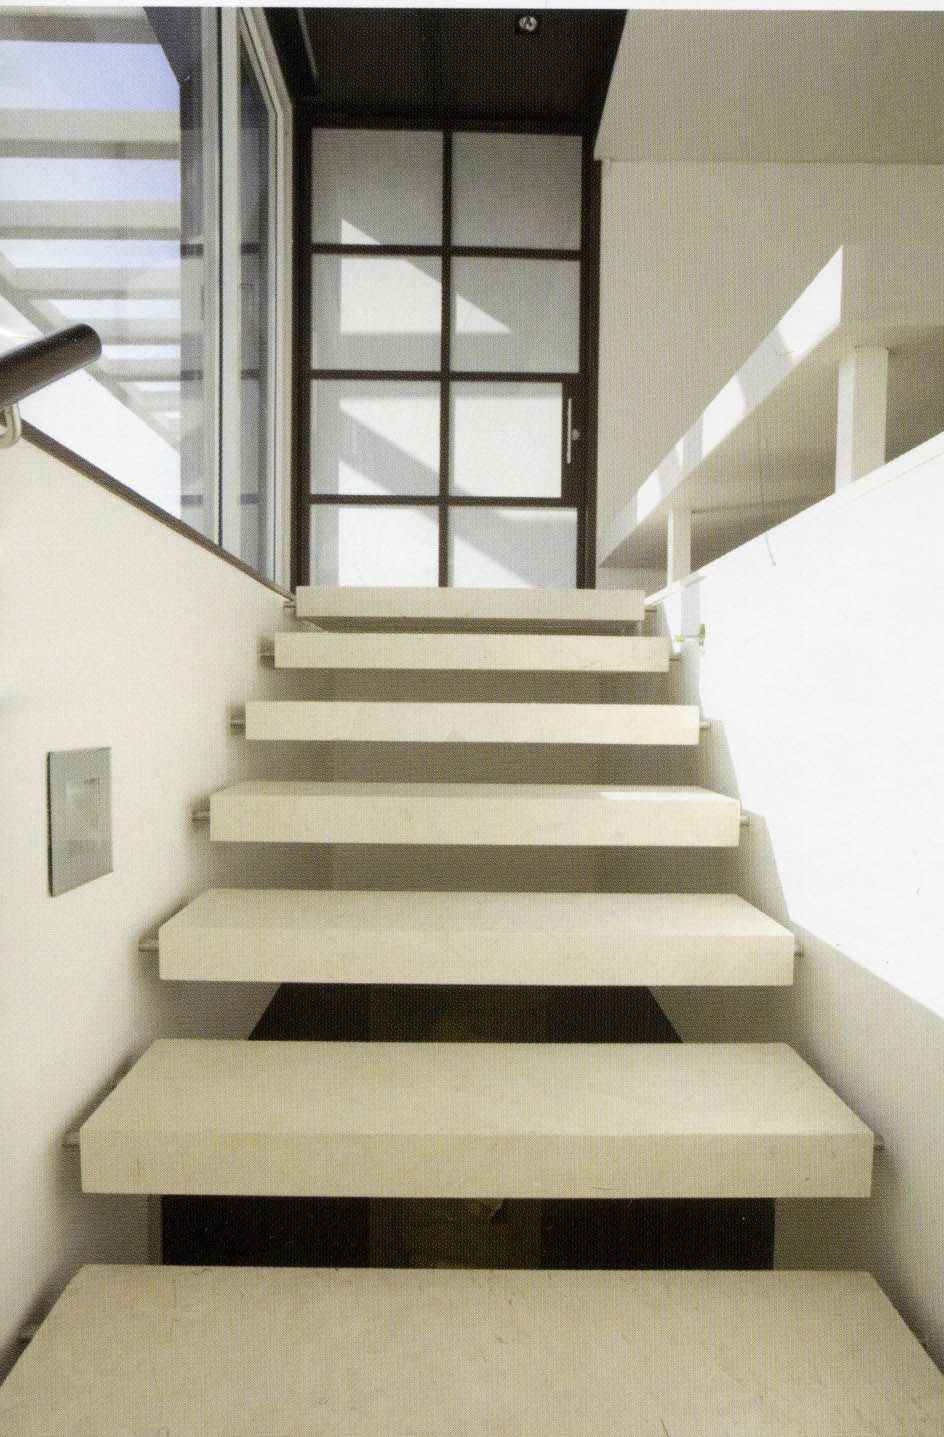 Design Floating Steps floating steps stairs pinterest steps